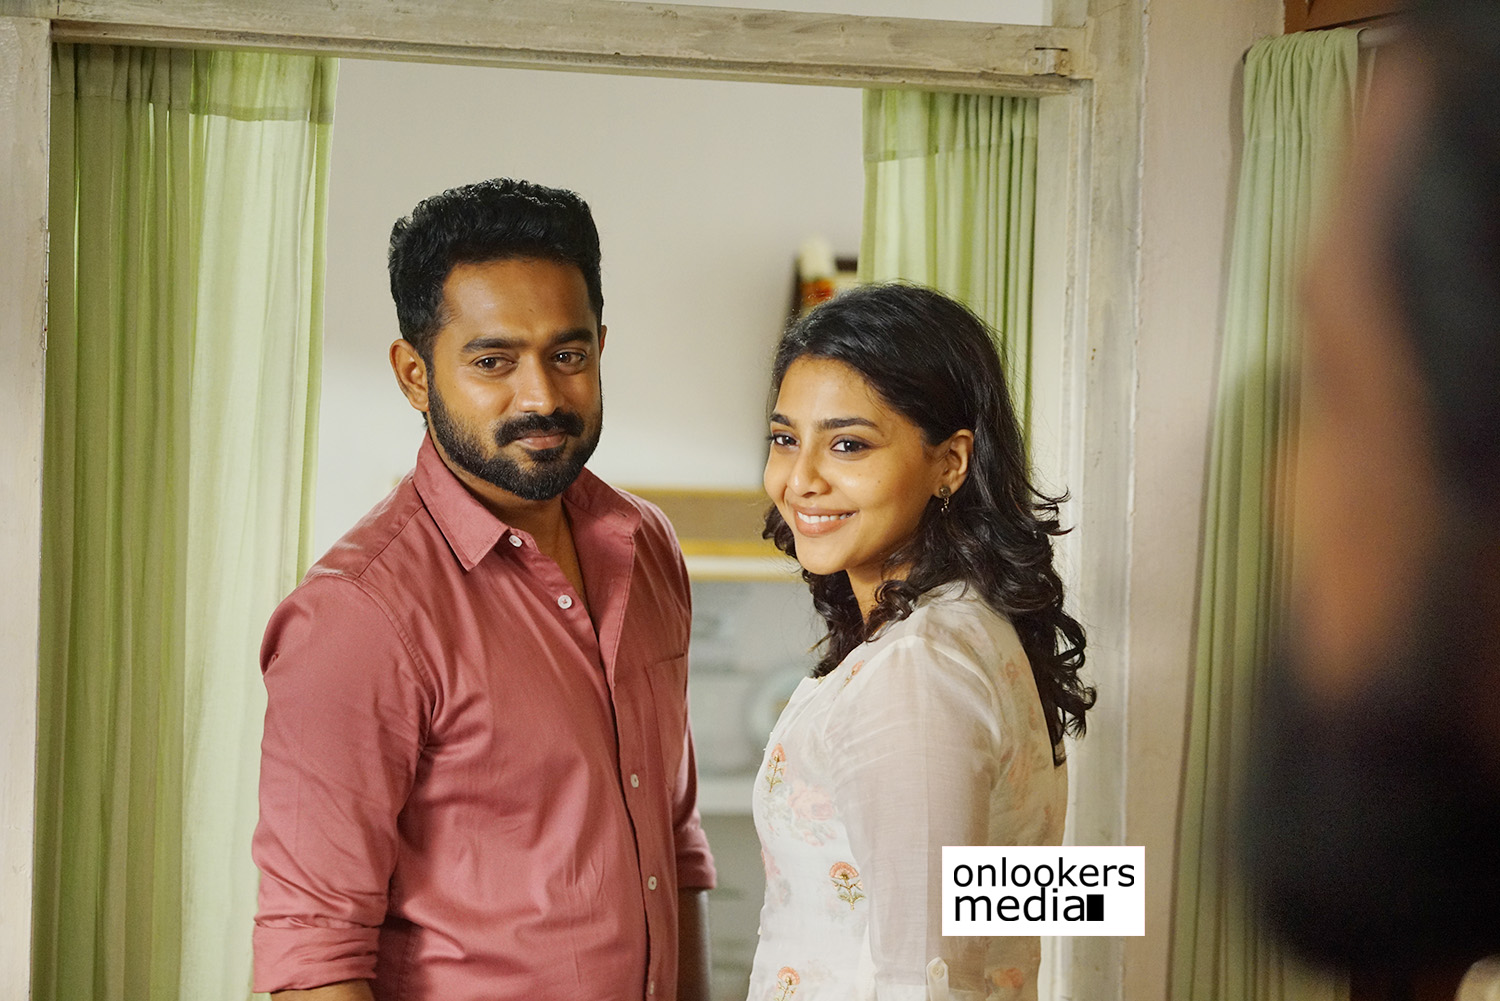 vijay superum pournamiyum review,asif  ali,jis joy,asif ali jis joy new movie review,asif ali aishwarya lekshmi movie review,vijay superum pournamiyum hit or flop,vijay superum pournamiyum kerala box office report,asif ali new movie,aishwarya lekshmi new movie,vijay superum pournamiyum movie stills,actress aishwarya lekshmi stills photos,asif ali stills photos